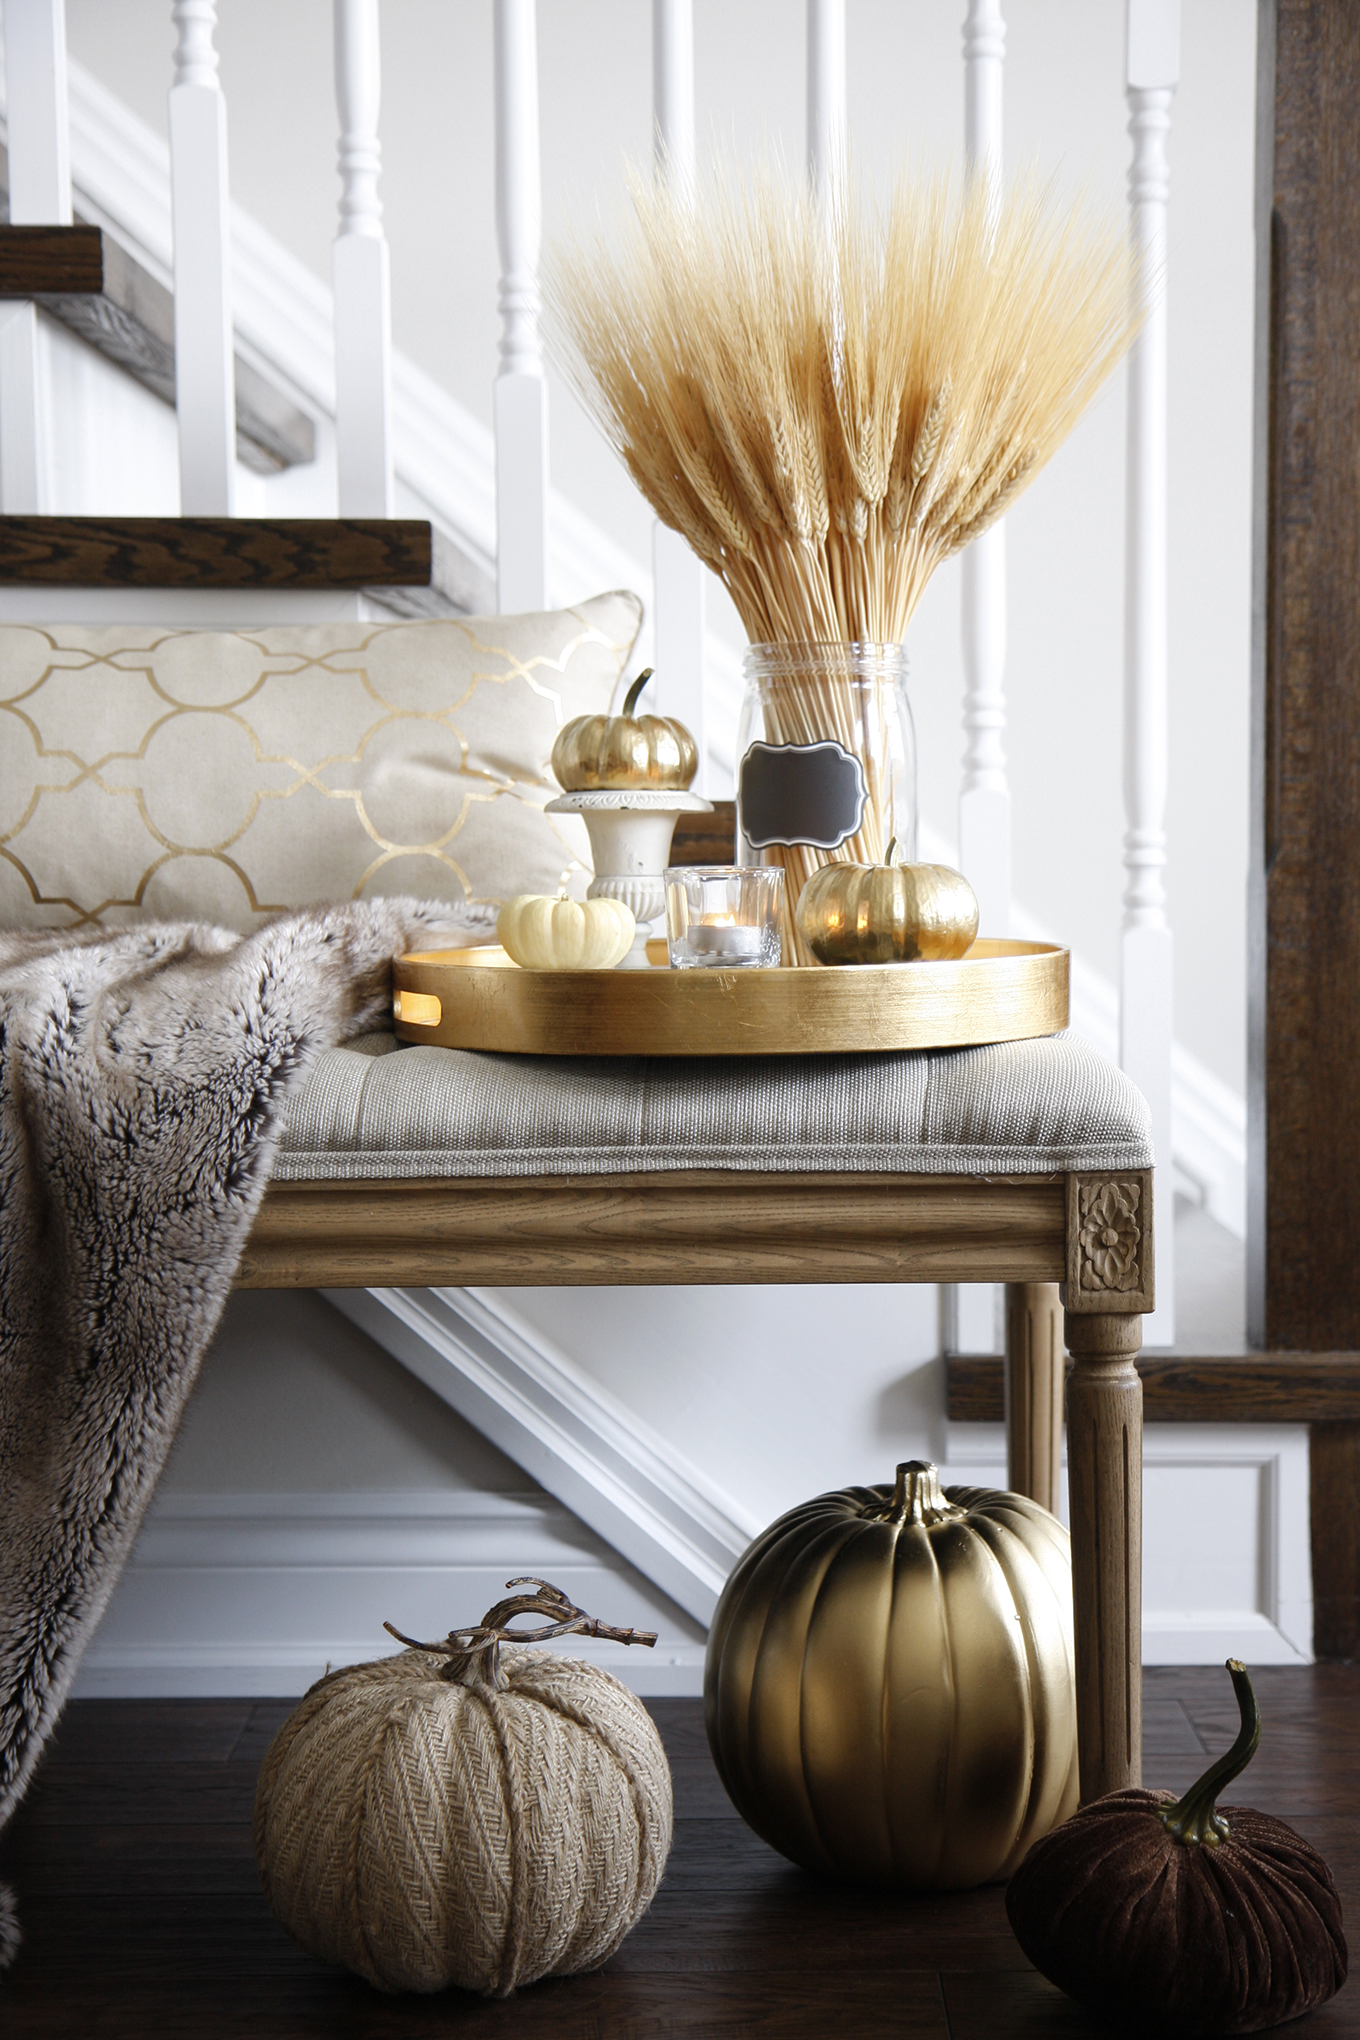 Decorating for Fall in Home